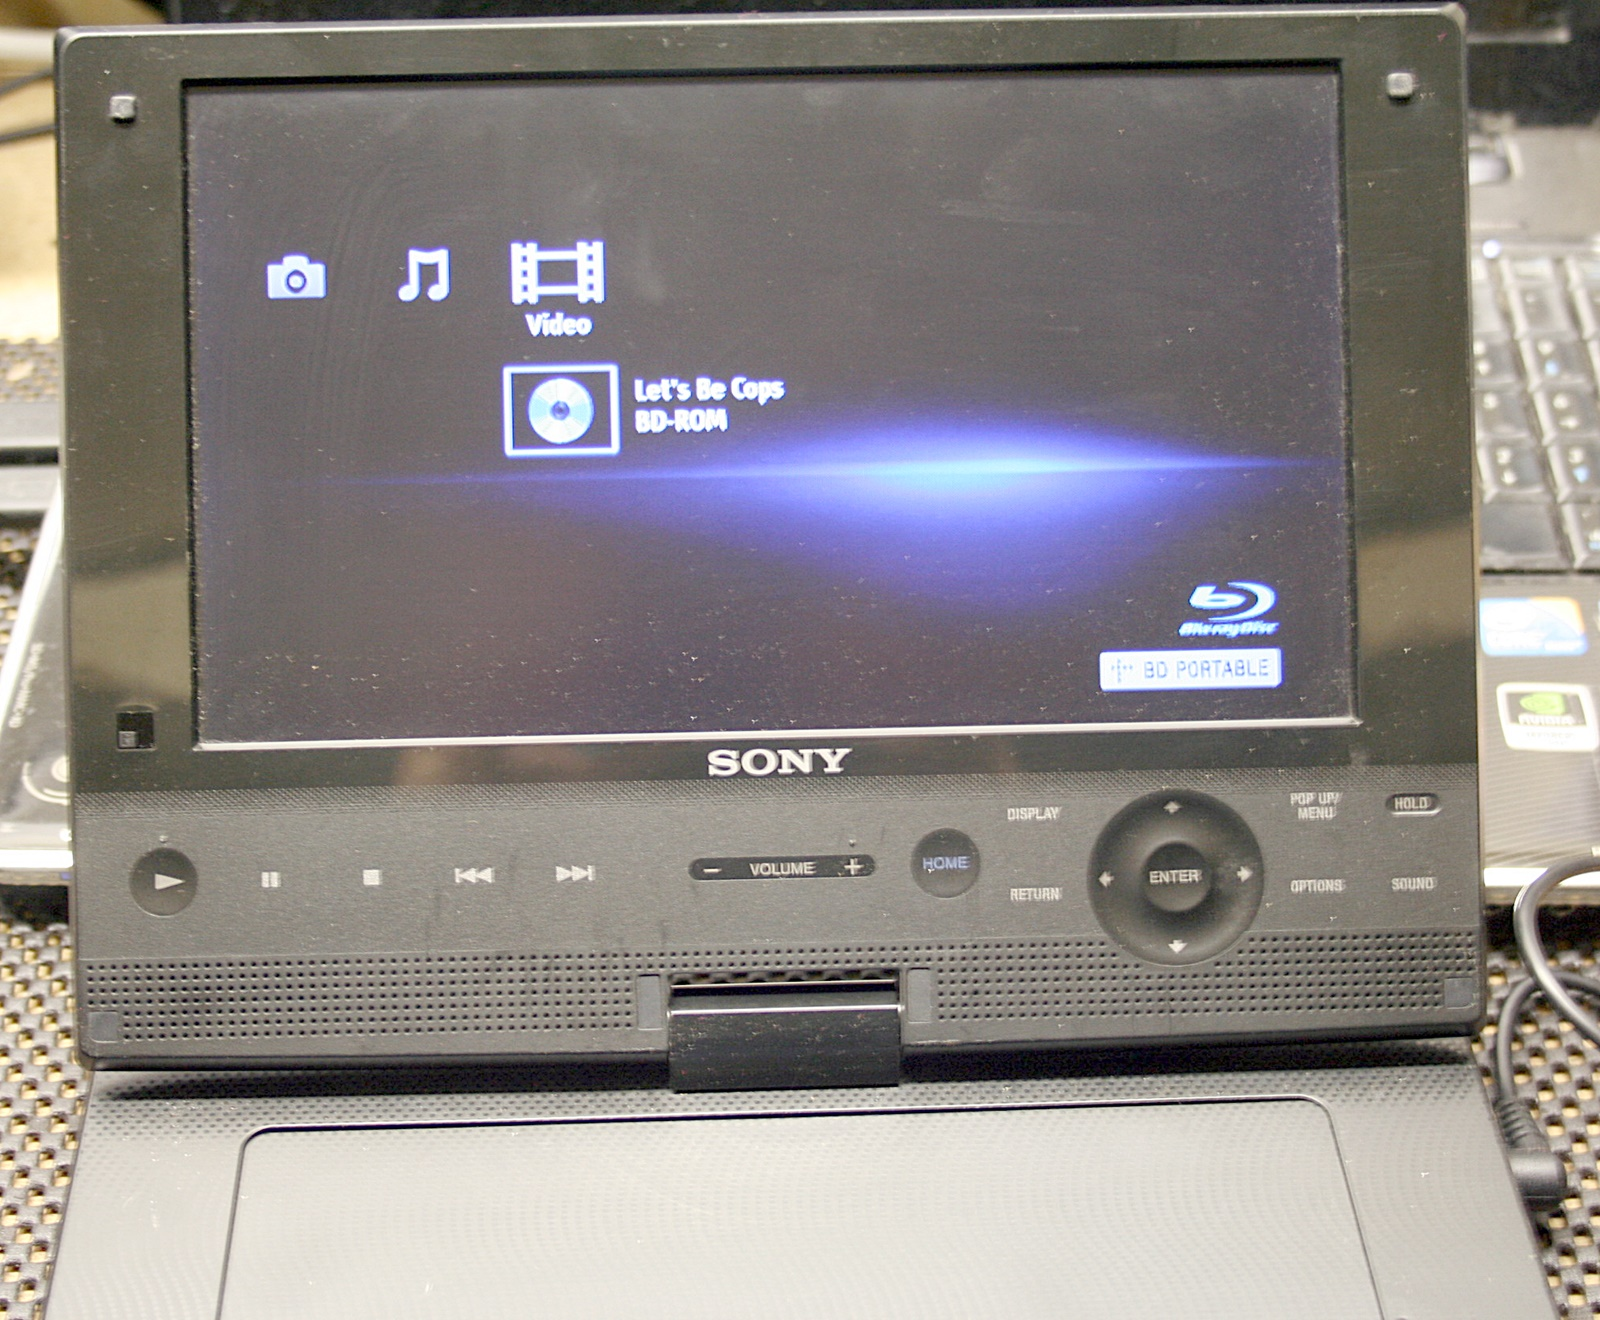 sony 9 inch portable blu ray disc dvd player bdp sx910. Black Bedroom Furniture Sets. Home Design Ideas